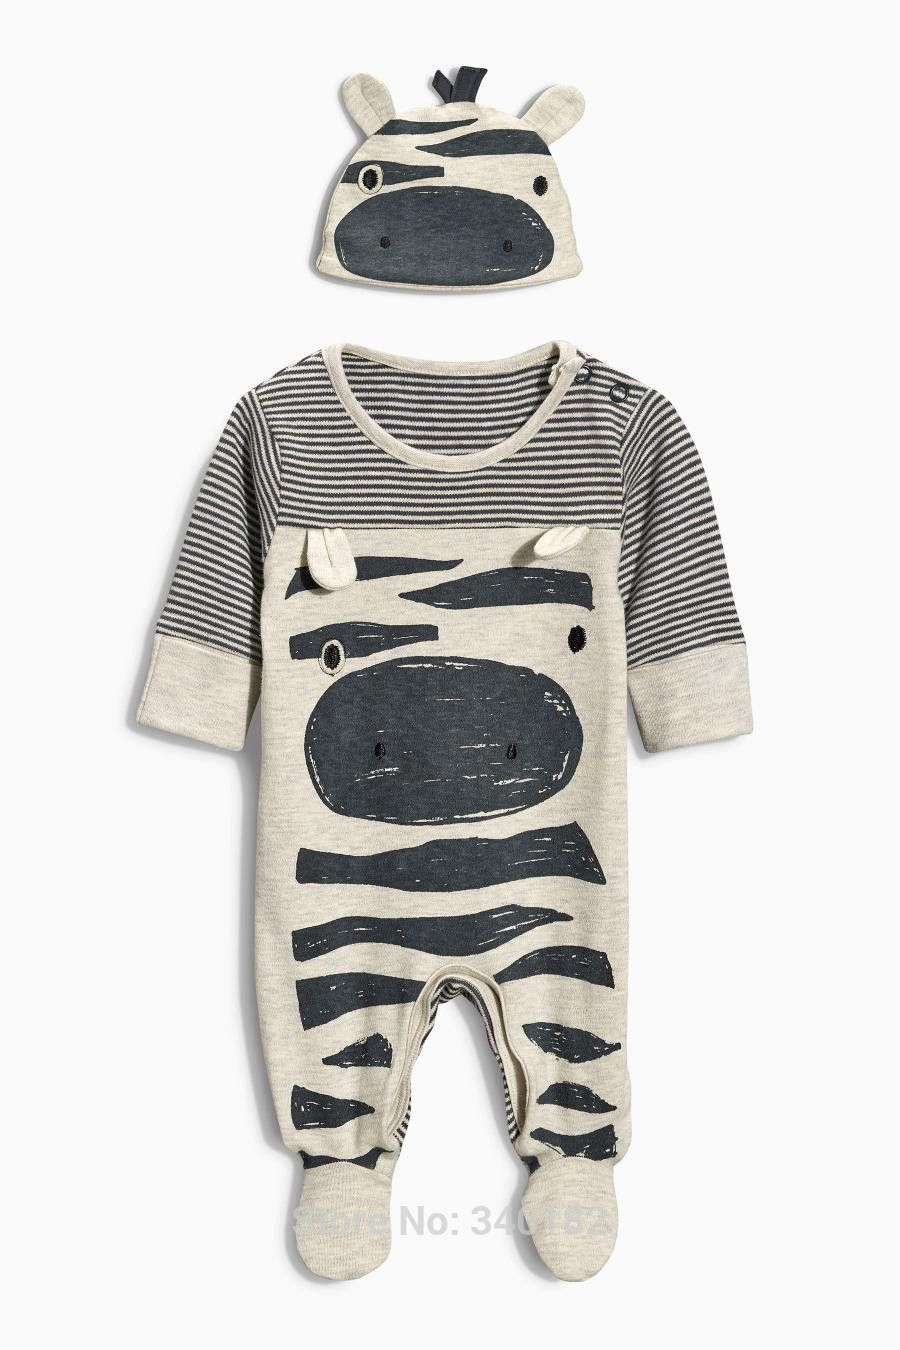 96cb111273a5 Cow 2 Piece Outfit for Baby